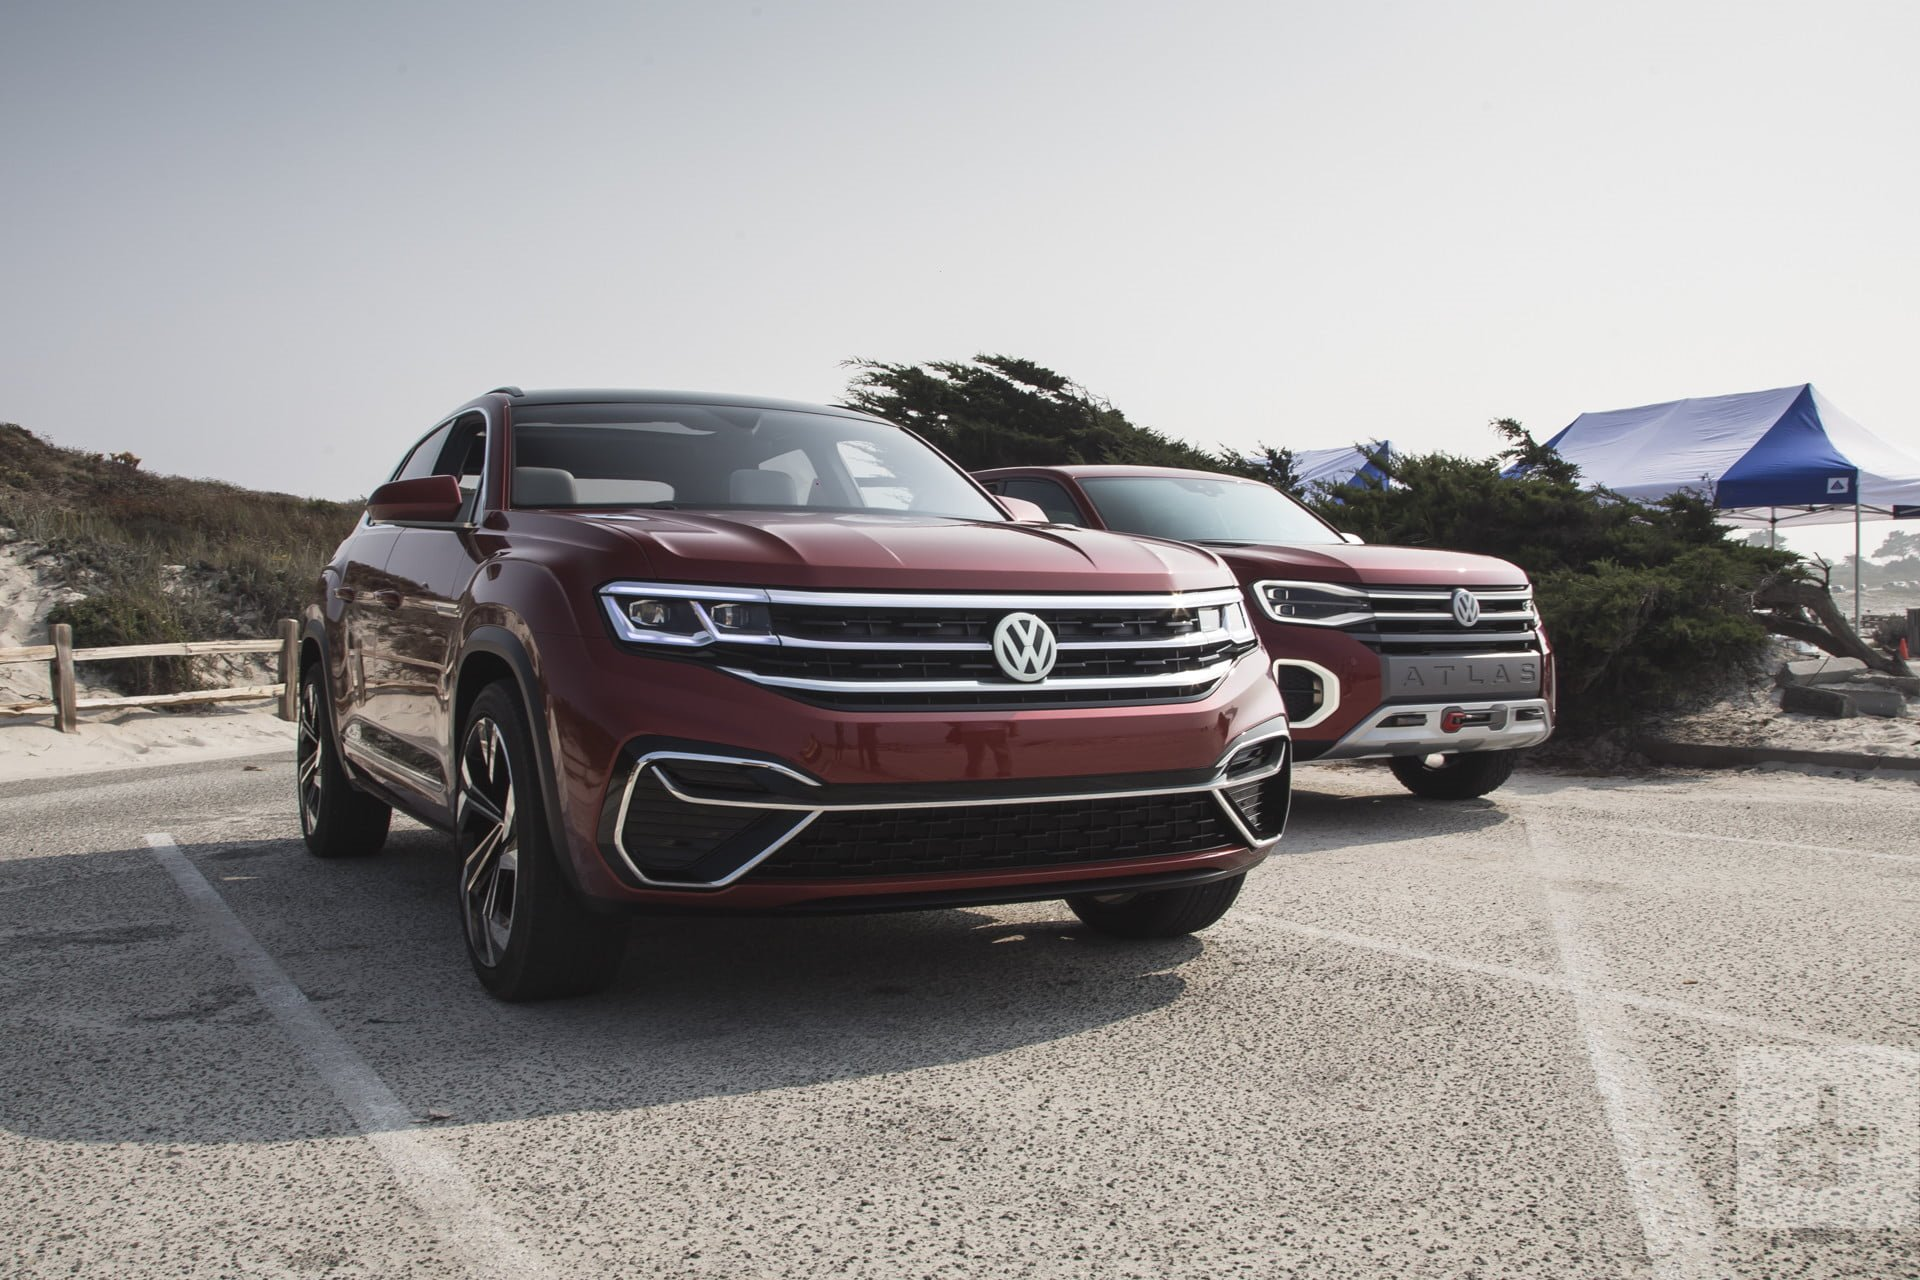 New 2019 Volkswagen-Atlas V6 SEL Premium 4Motion Atlas V6 SEL Premium 4Motion for sale $48,395 at M and V Leasing in Brooklyn NY 11223 1